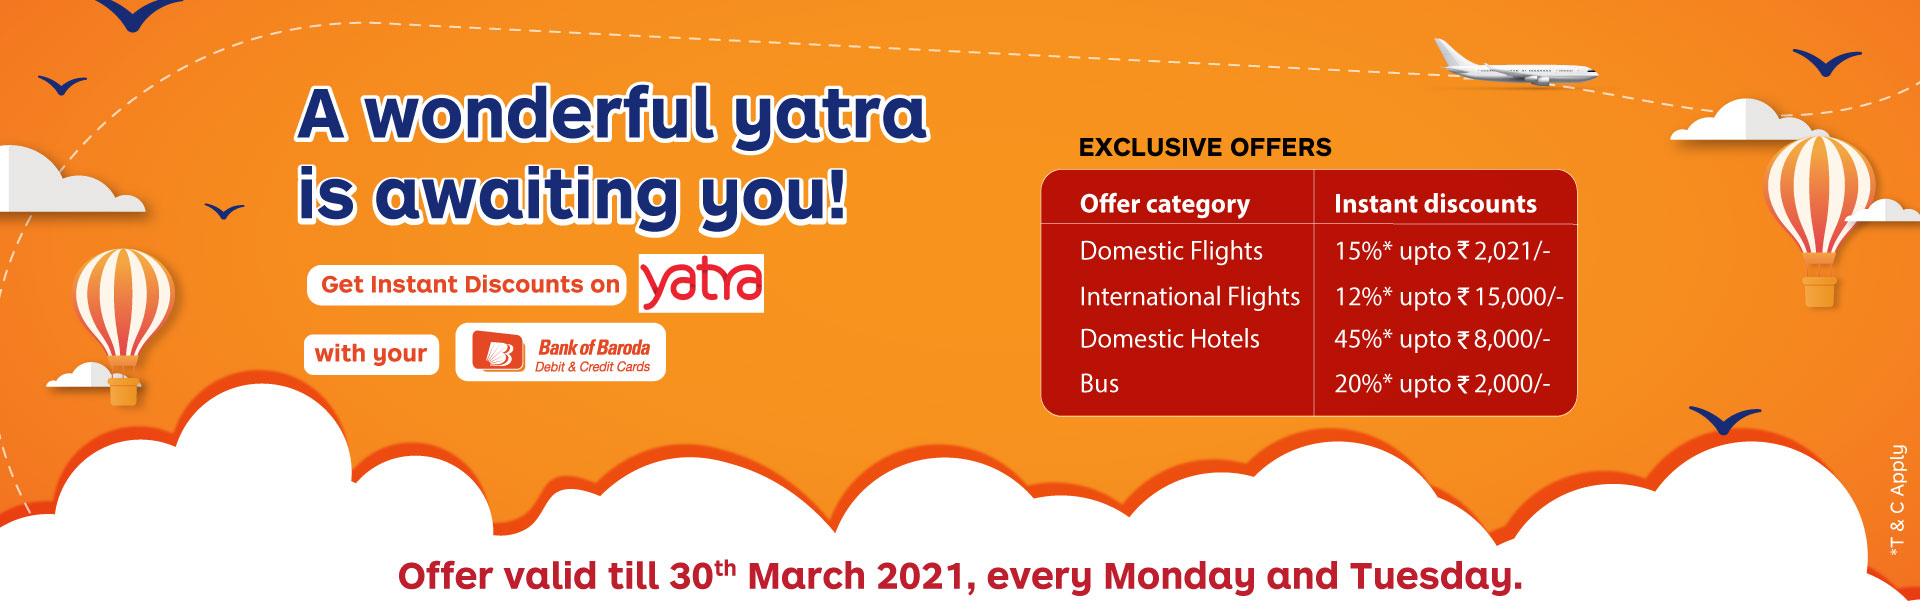 Yatra-Offer-campaign-Offer